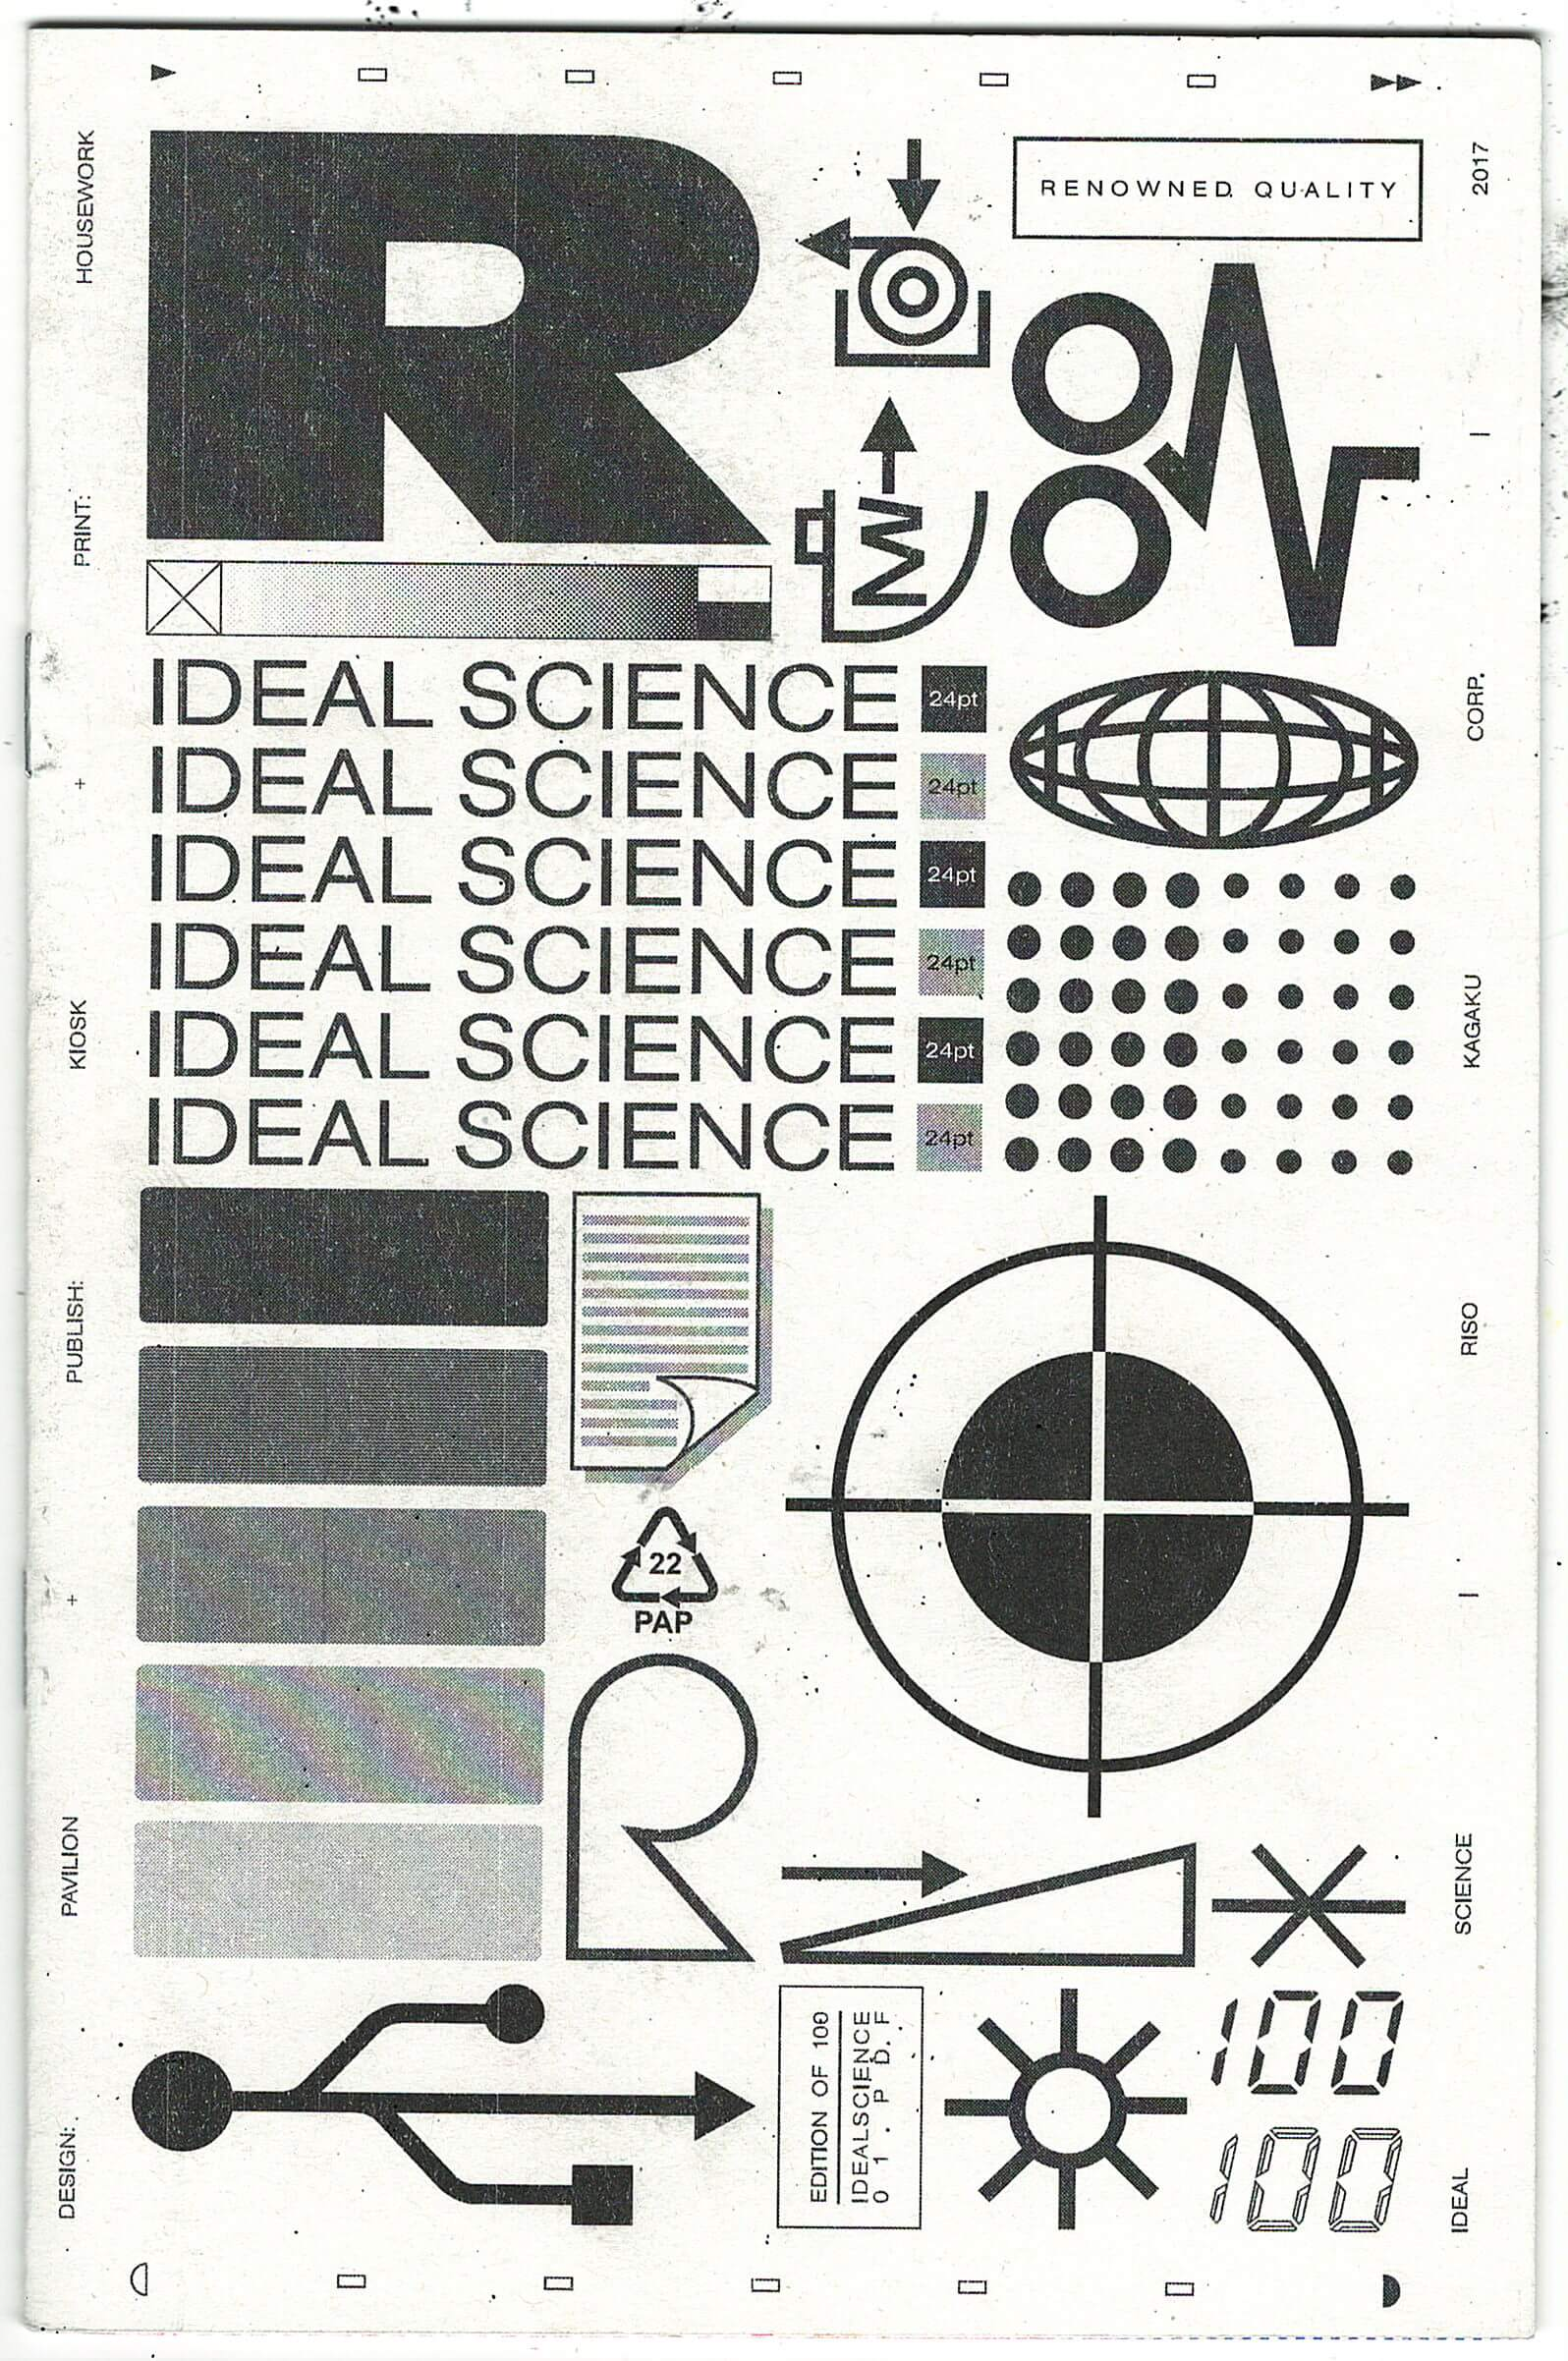 Ideal Science: A Risographic Survey